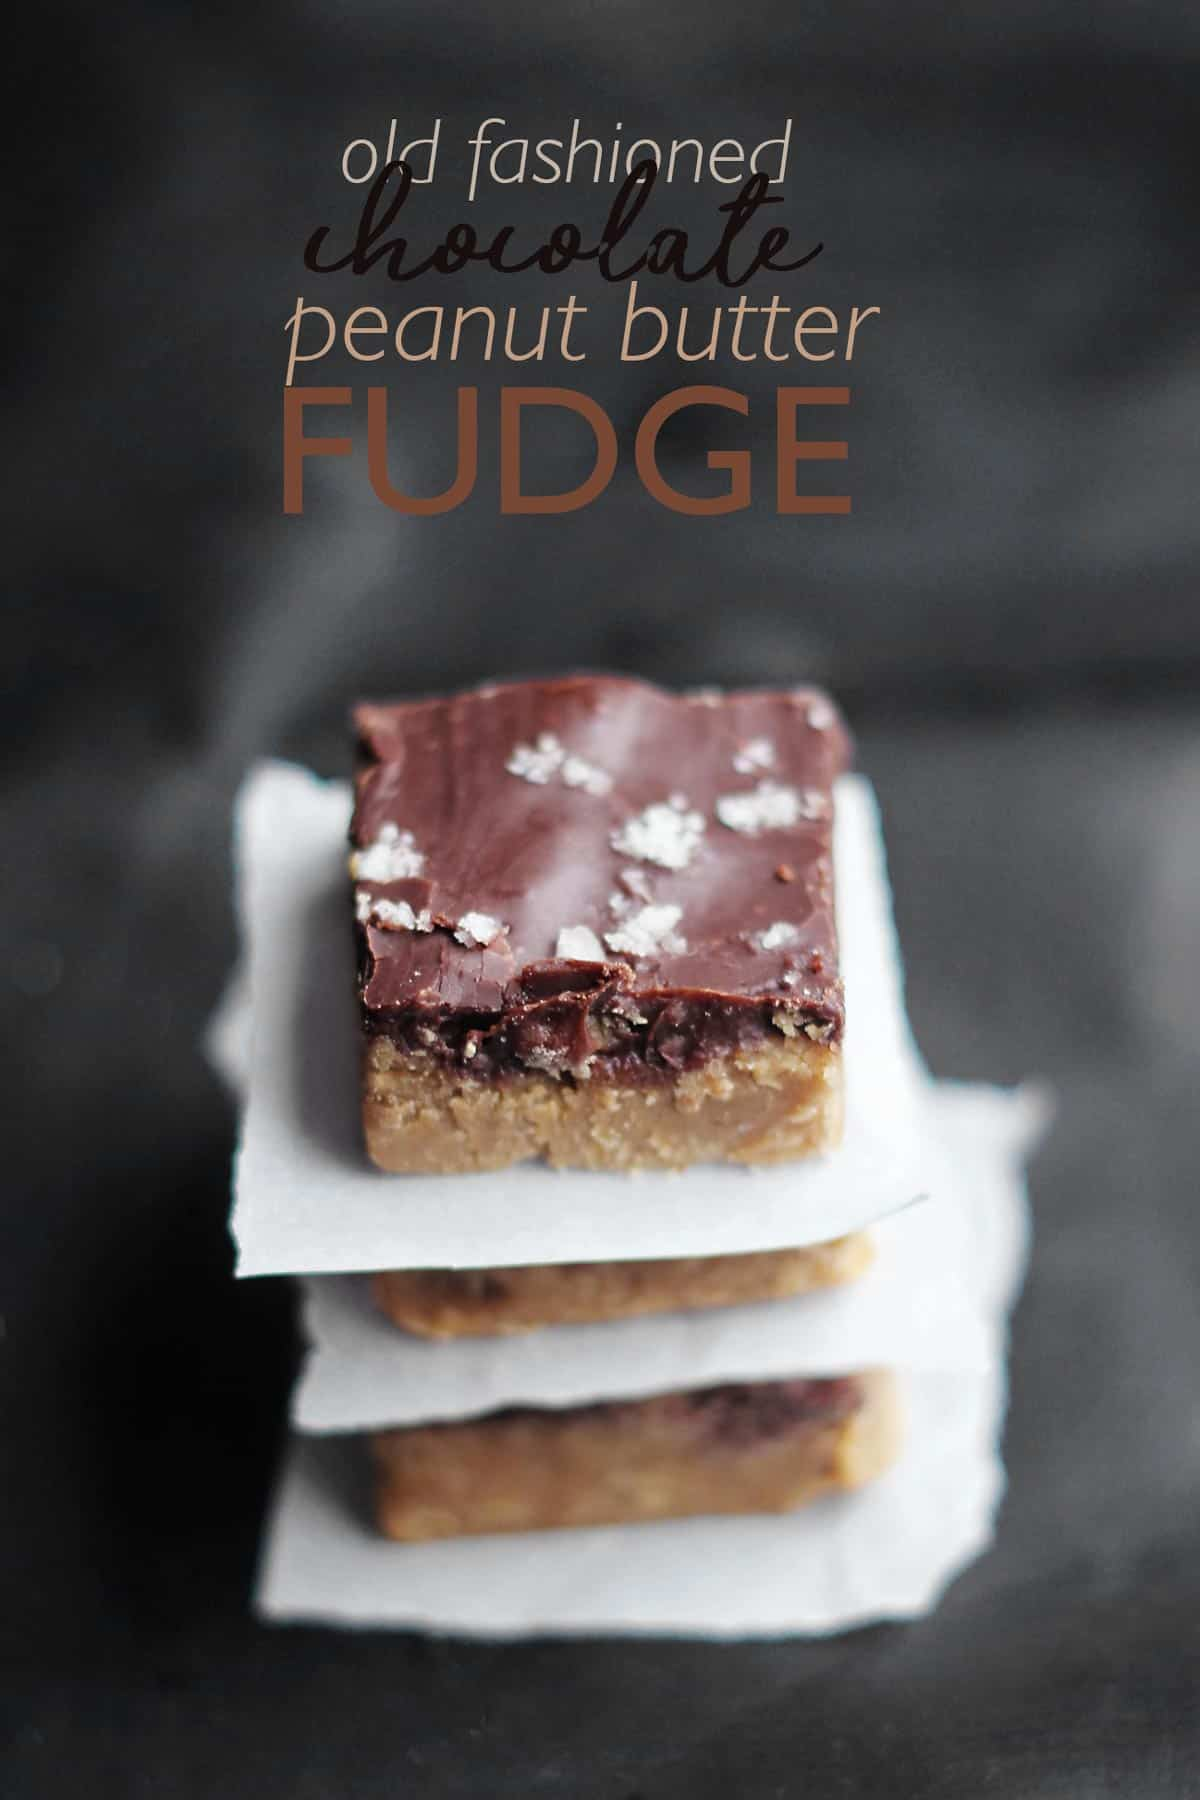 Chocolate Peanut Butter Fudge is an old fashioned peanut butter fudge recipe made on the stovetop. peanut butter fudge | chocolate peanut butter fudge | peanut butter fudge without powdered sugar | old fashioned peanut butter fudge | how to make peanut butter fudge